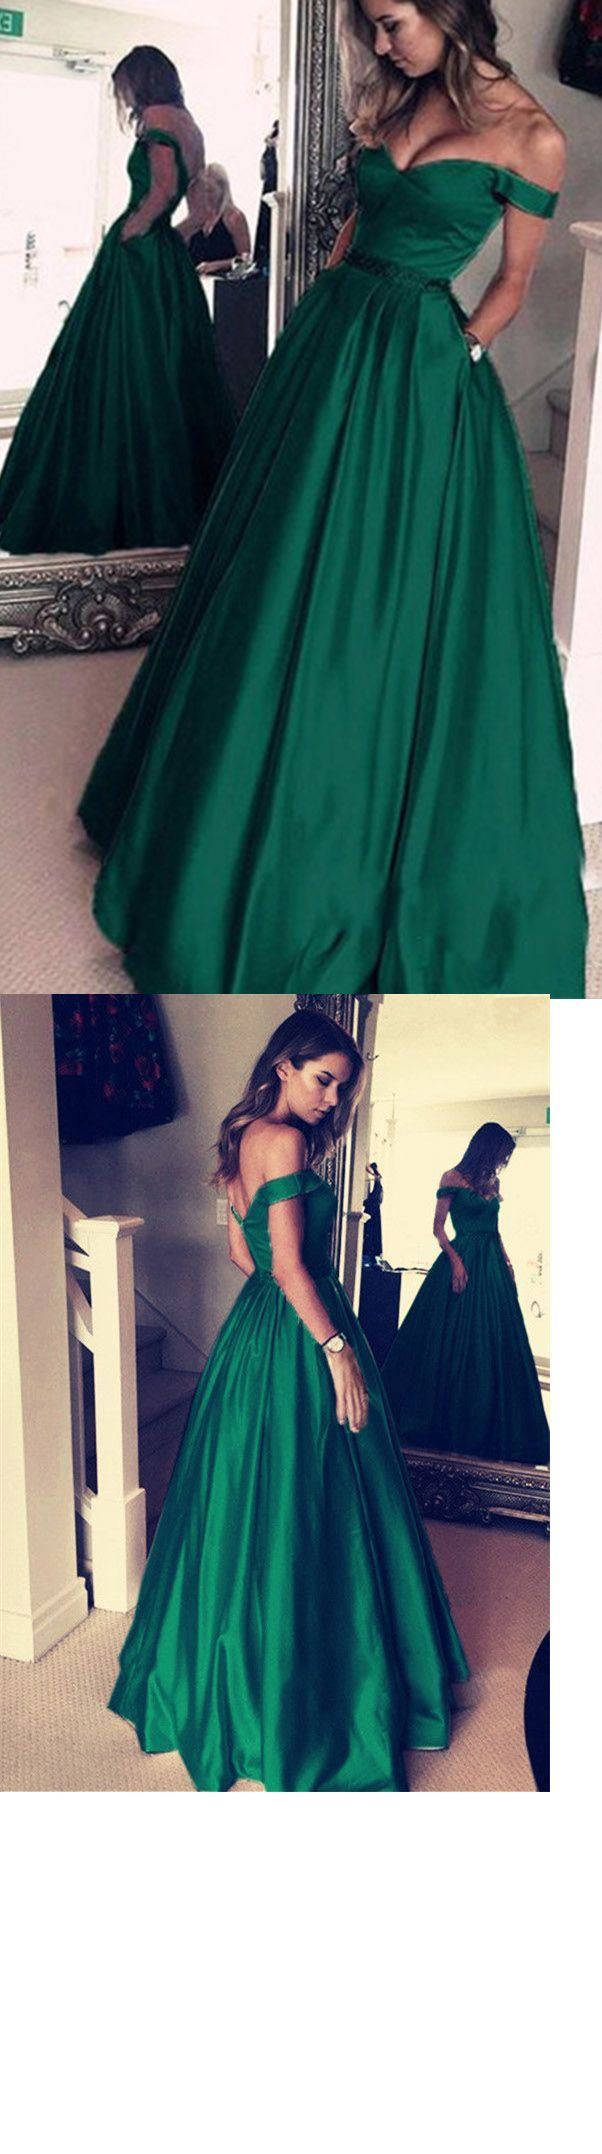 Classy dark green prom dress long senior girls graduation formal